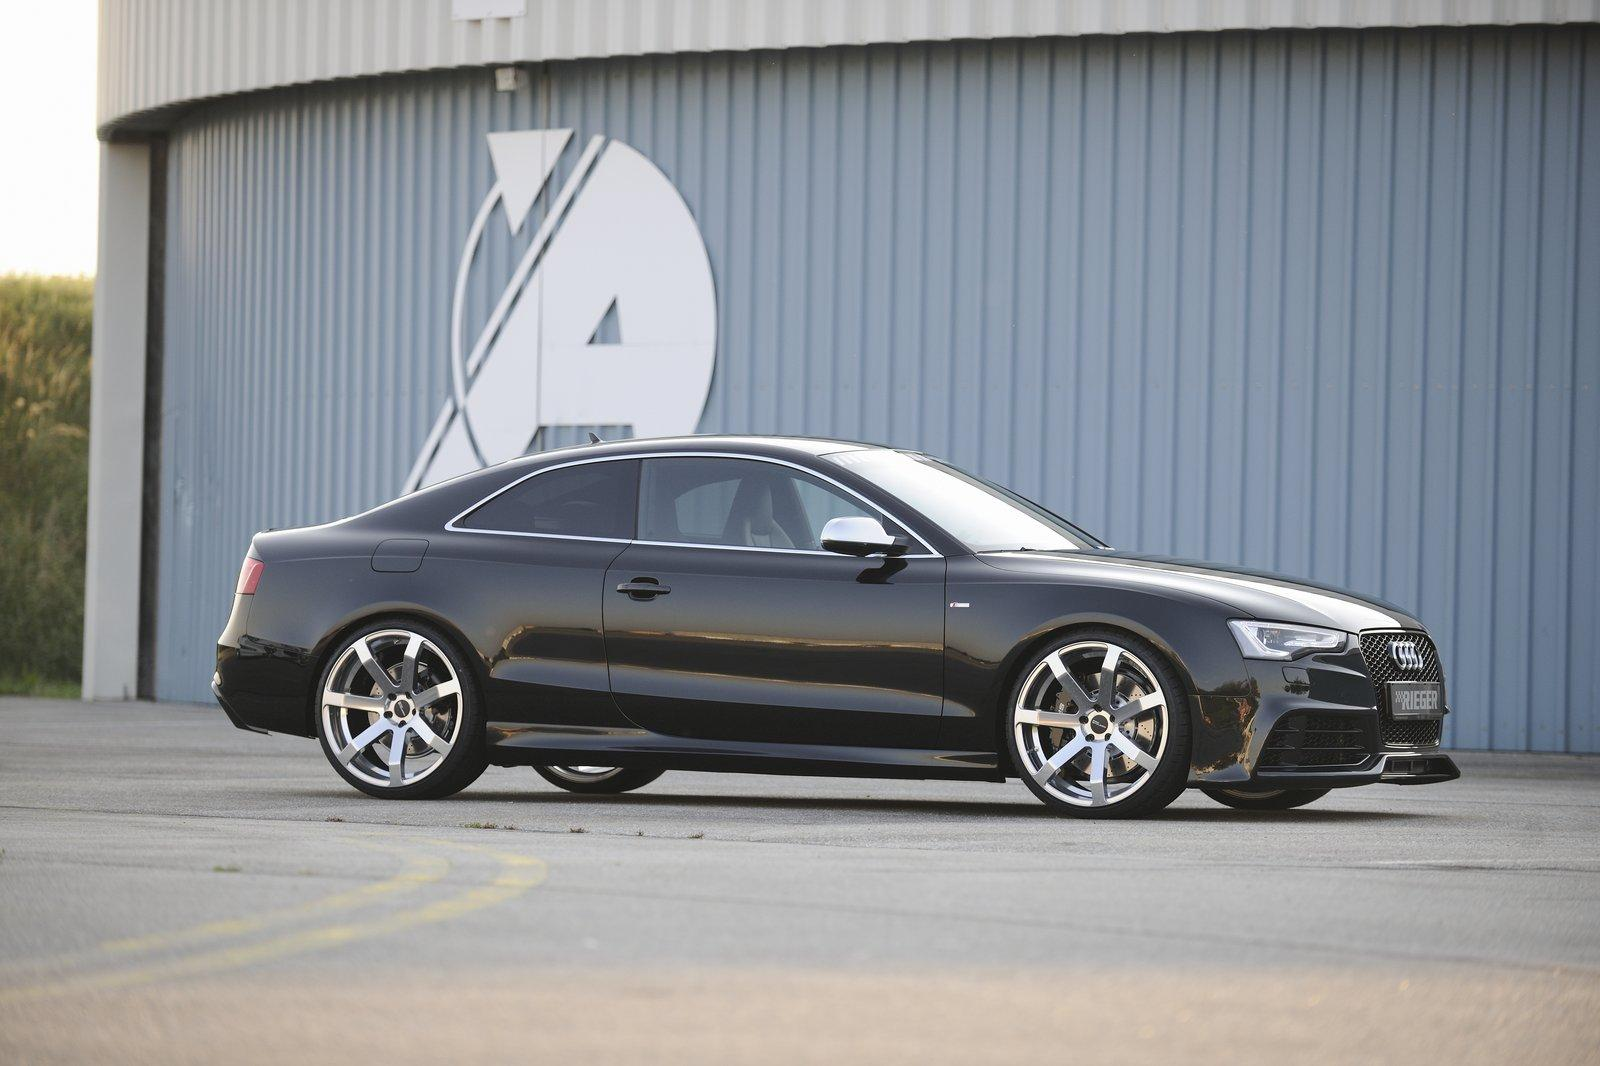 2012-Audi-A5-Facelift-Rieger-Tuning-8.jpg?imgmax=1800